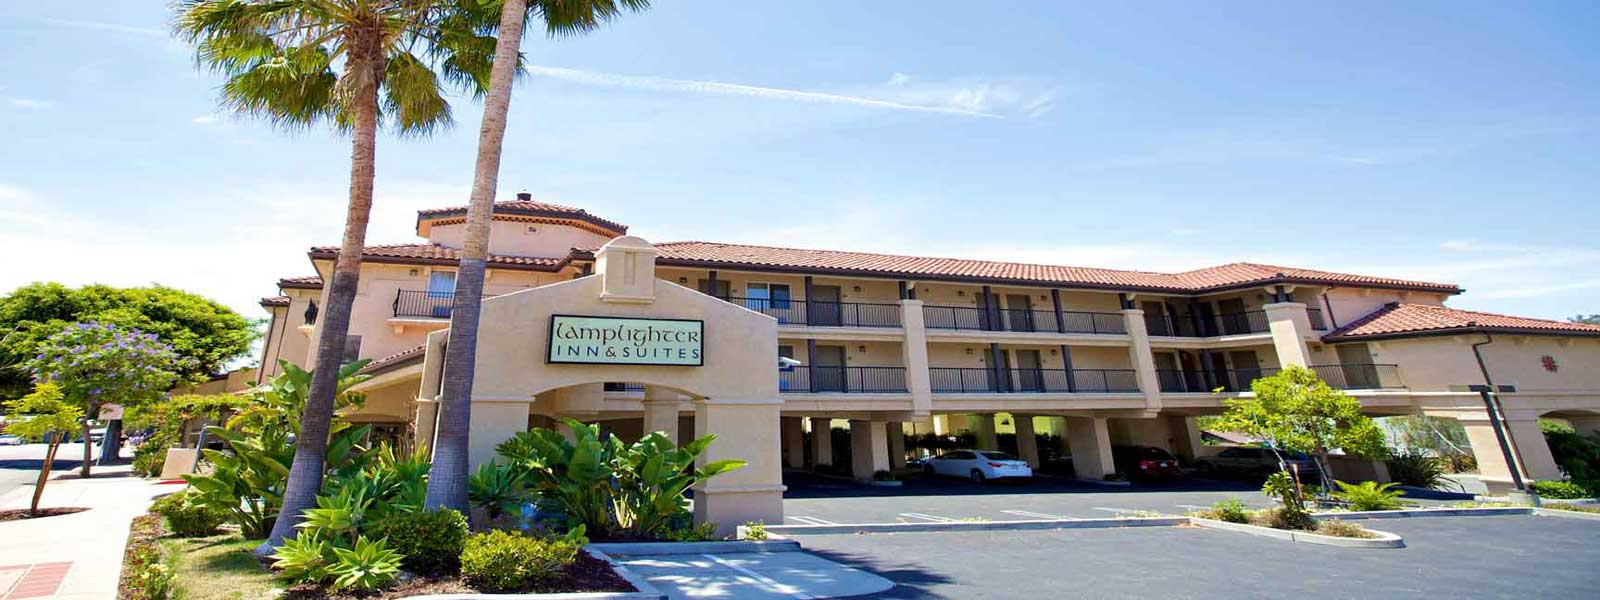 Clean Comfortable Rooms Lodging Hotels Motels in San Luis Obispo California